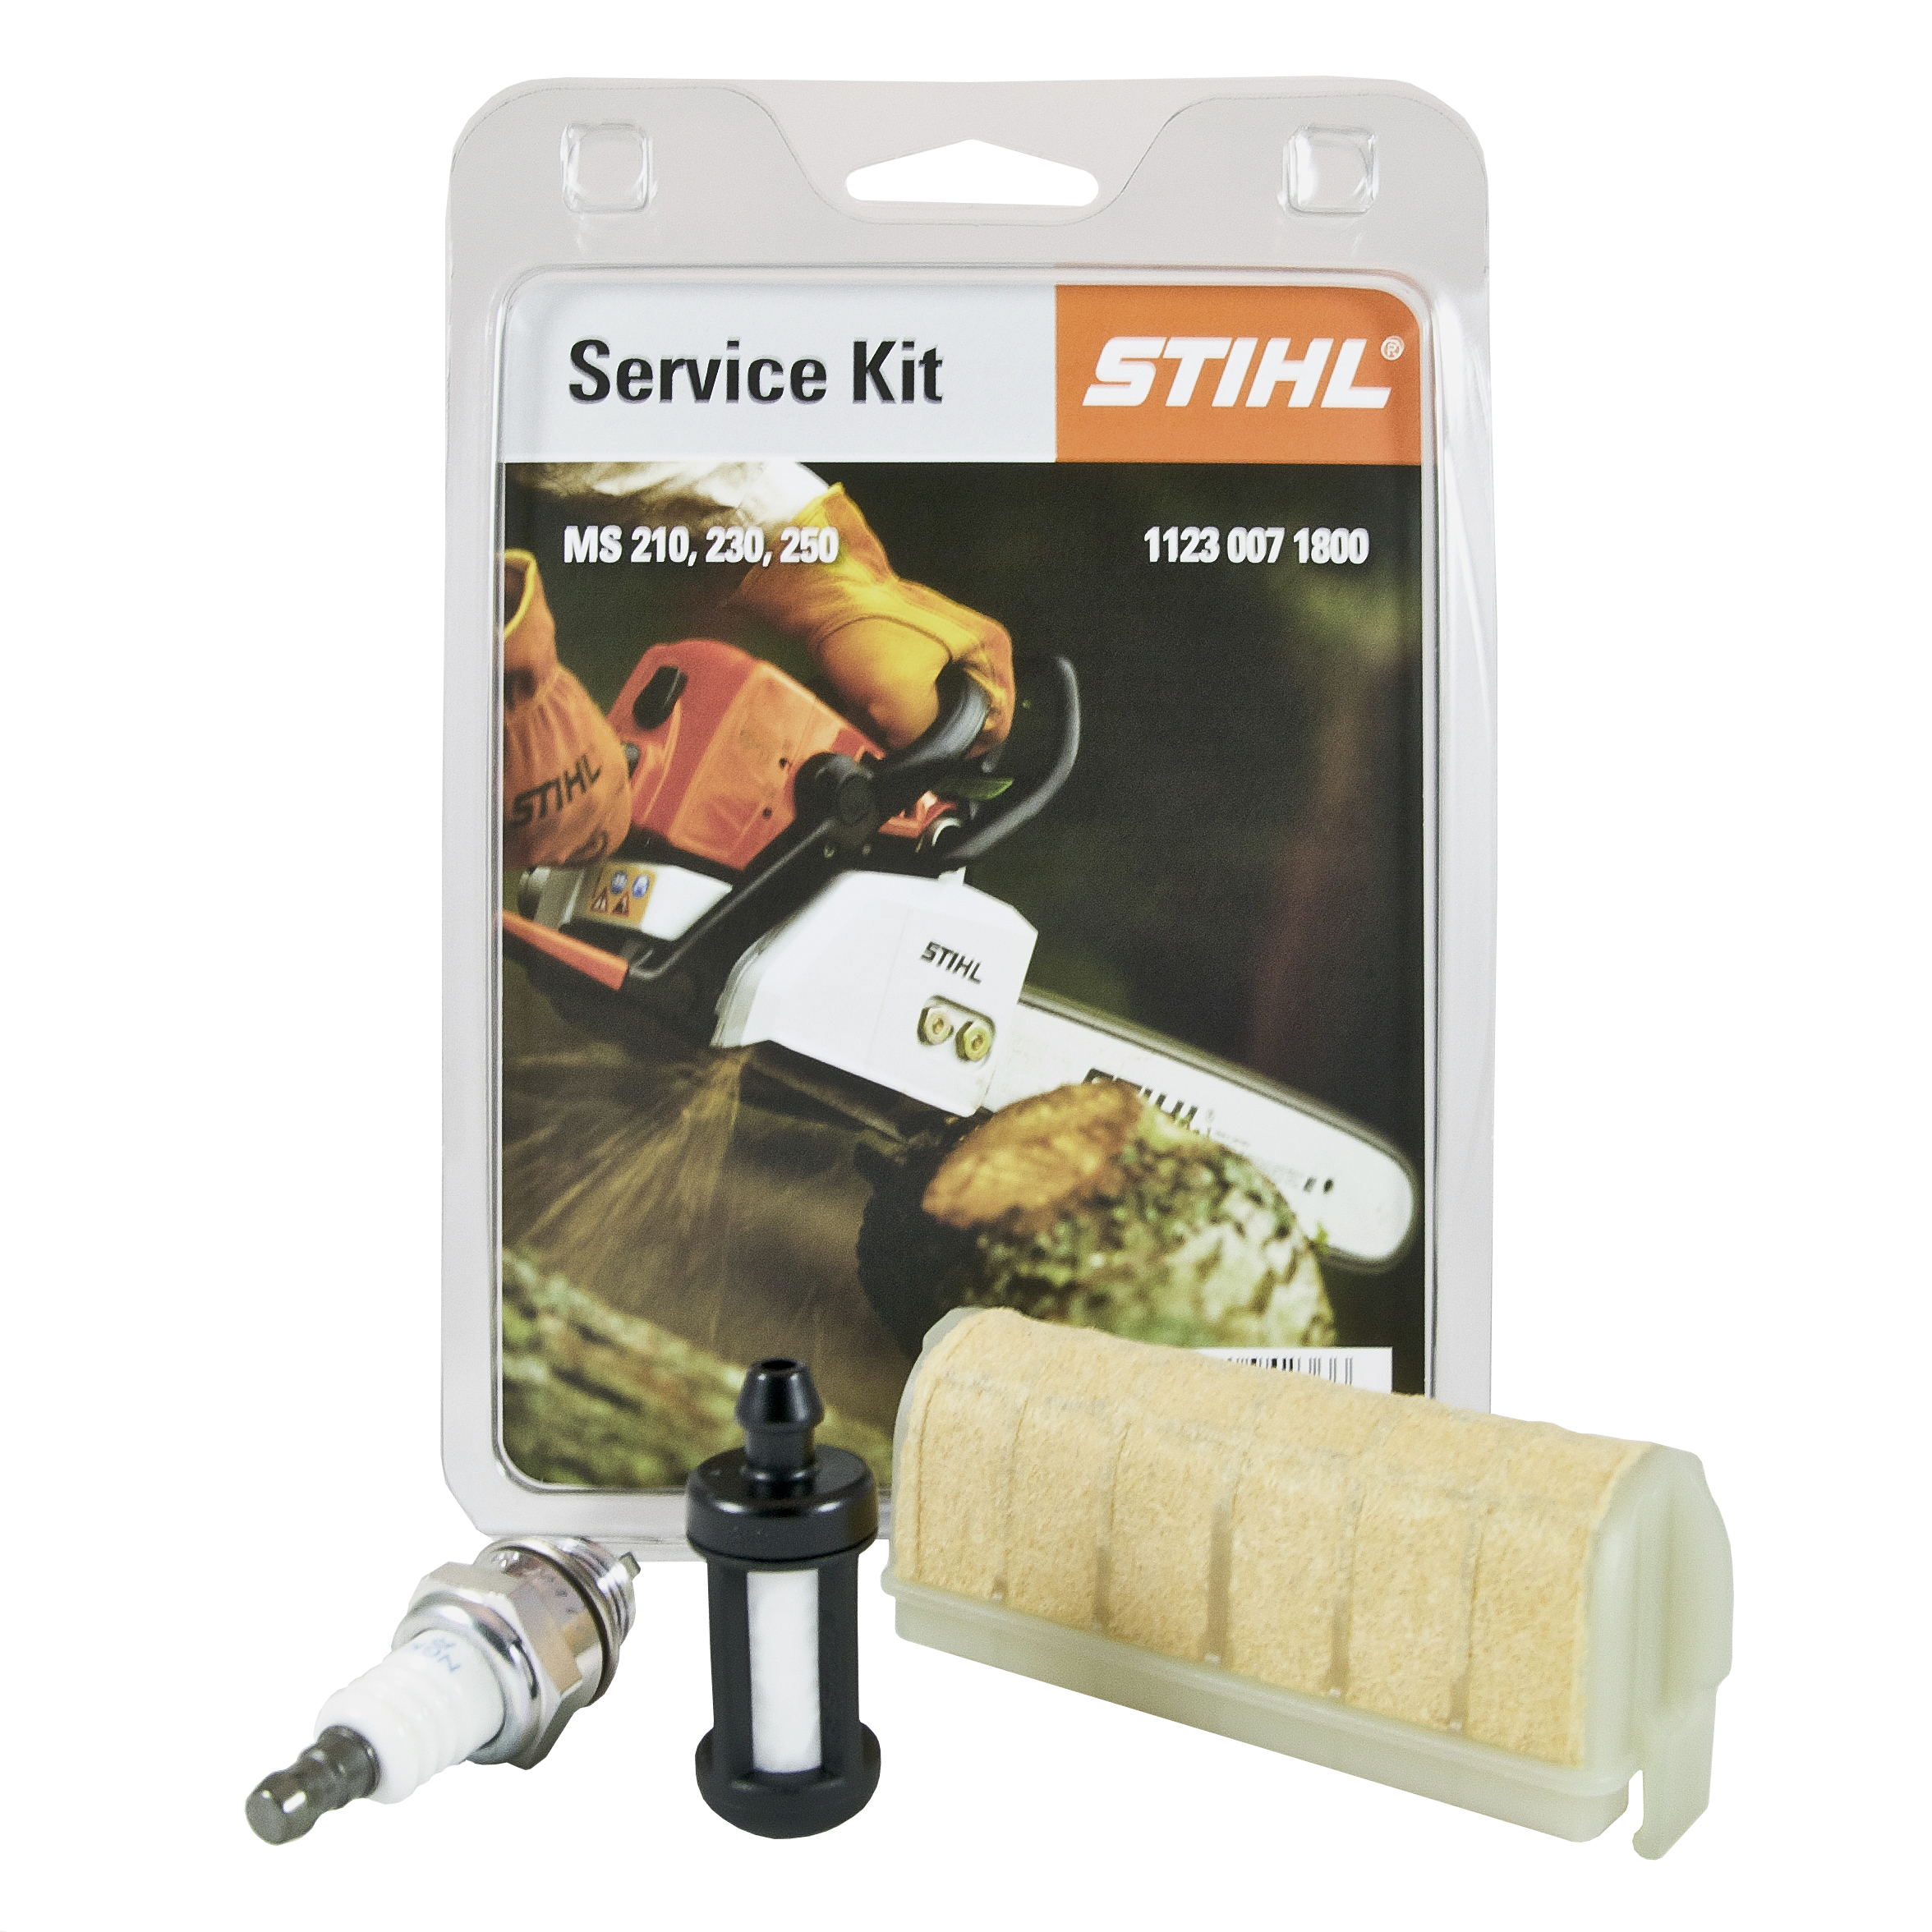 Murdoch's – STIHL - Chainsaw Service Kit for MS 210, 230 & 250 Models